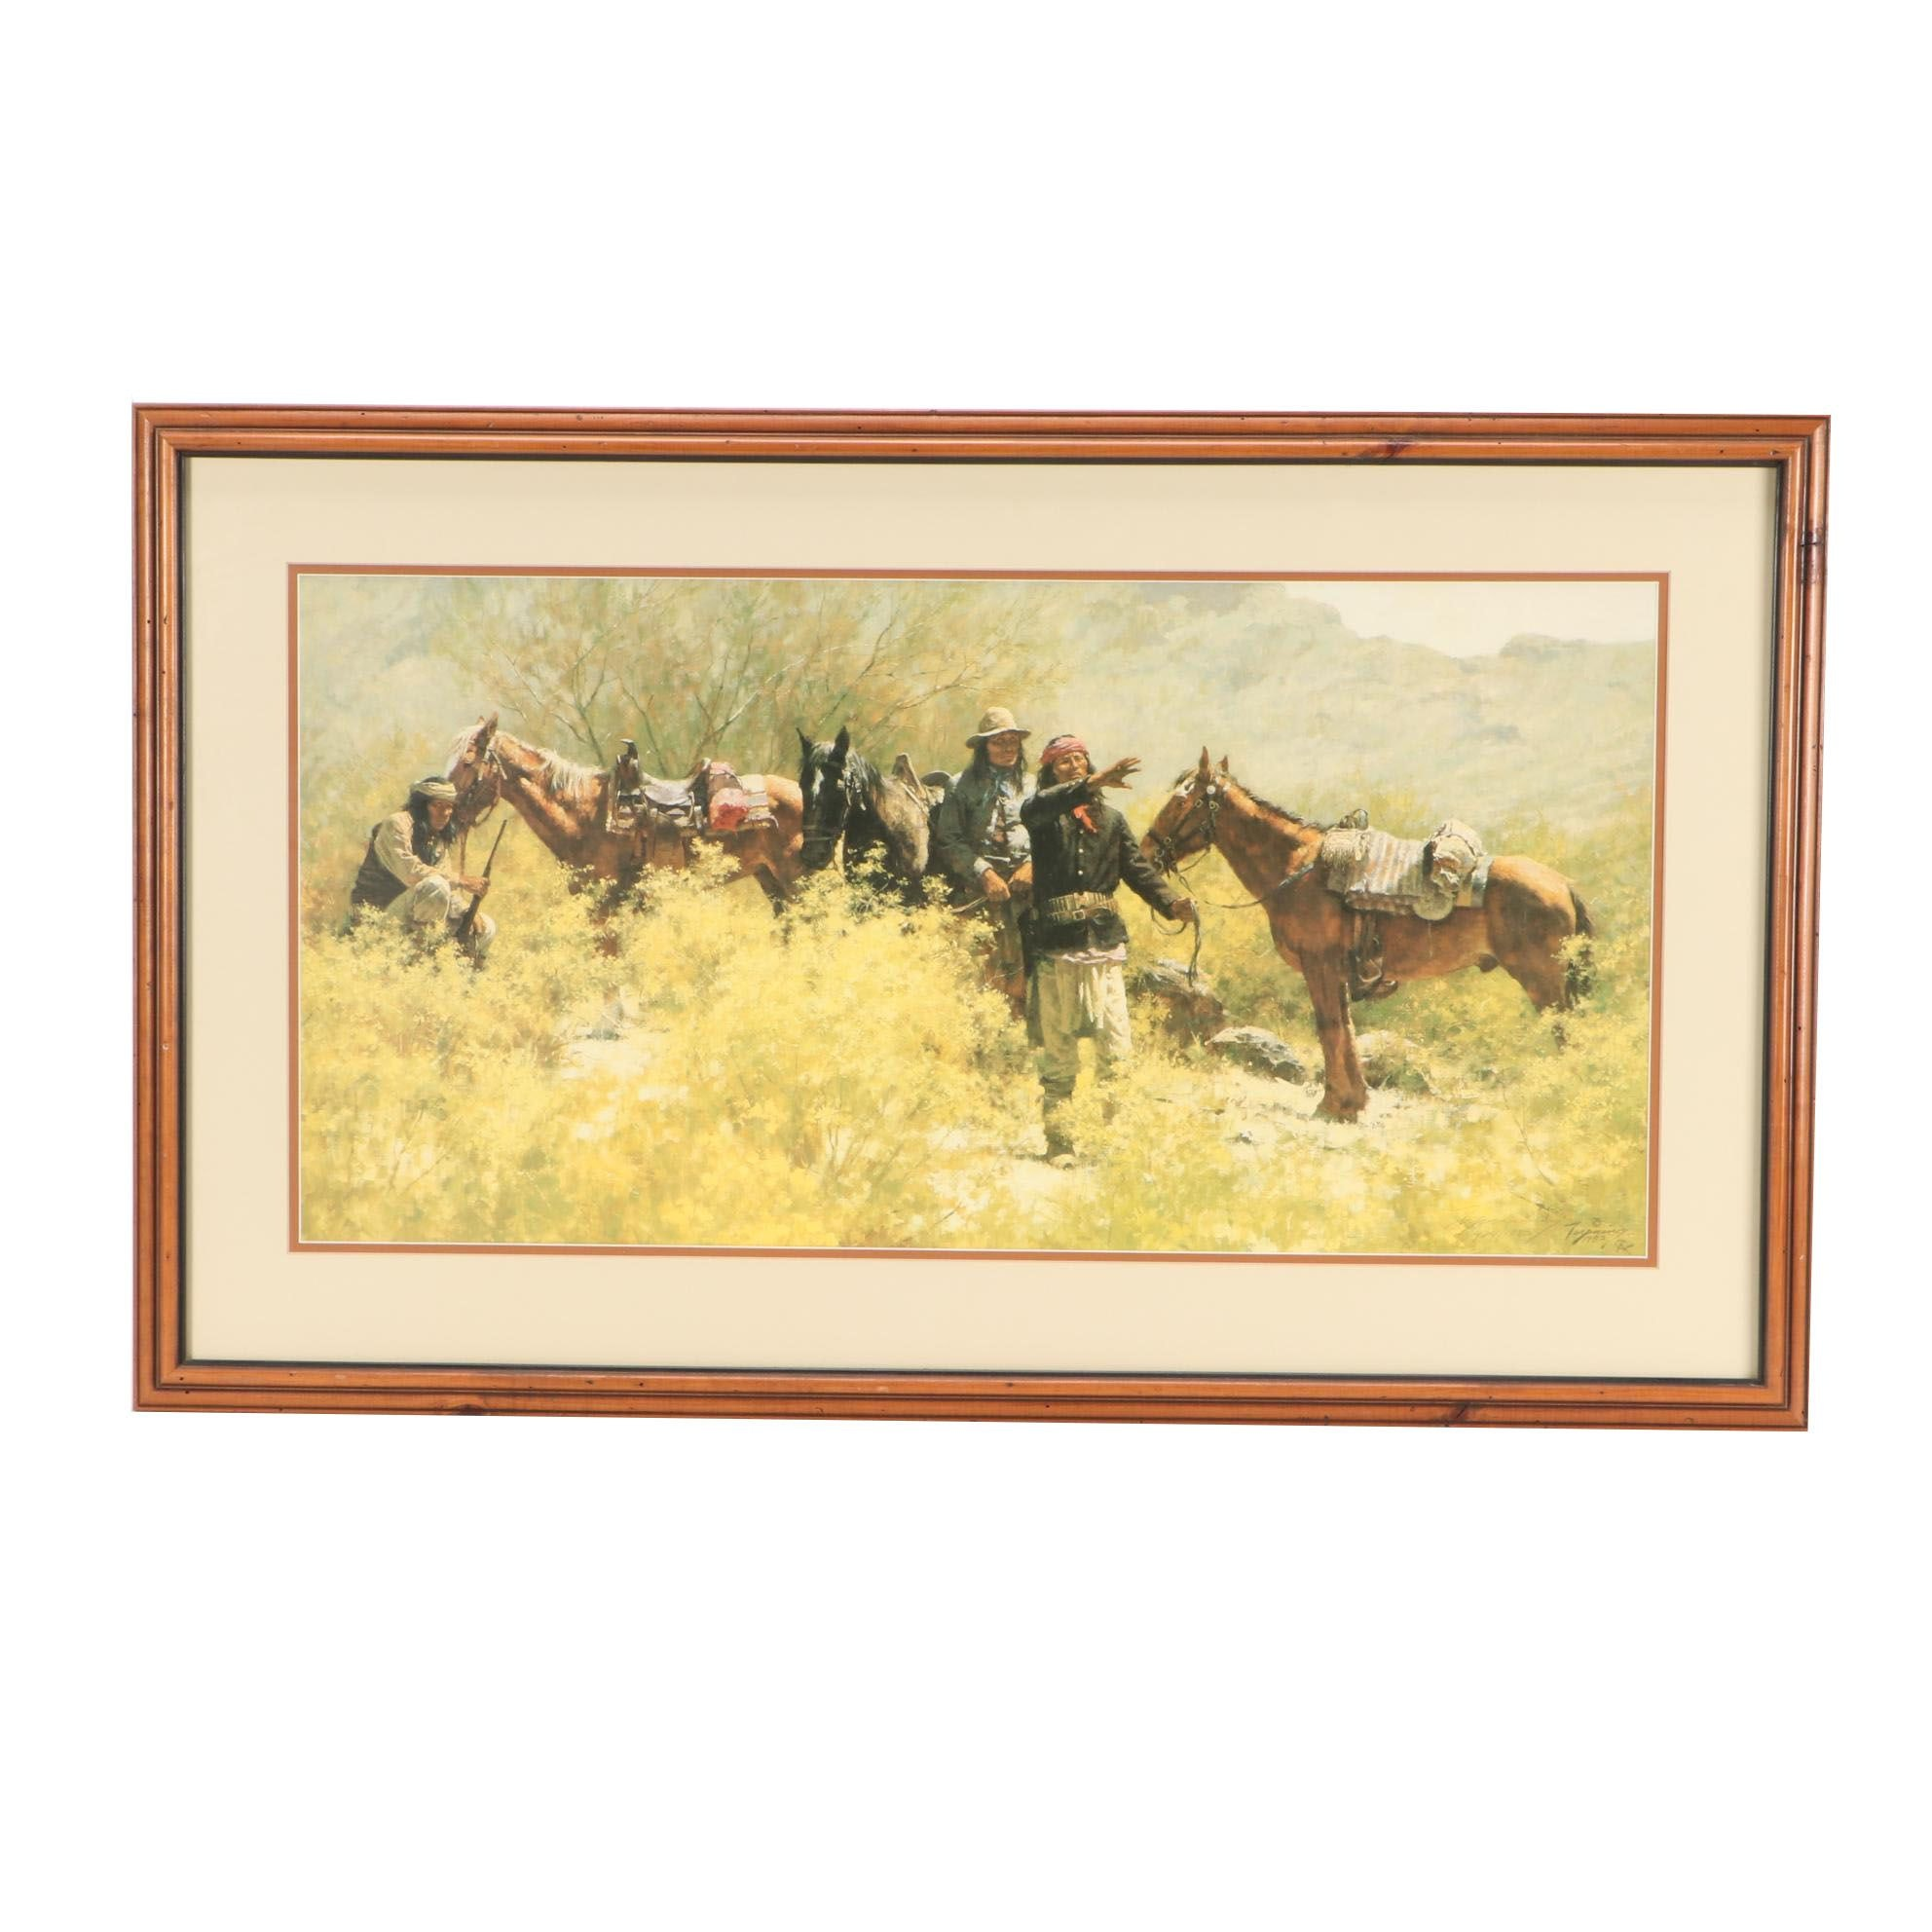 Howard Terpning Limited Edition Offset Lithograph of Native Americans